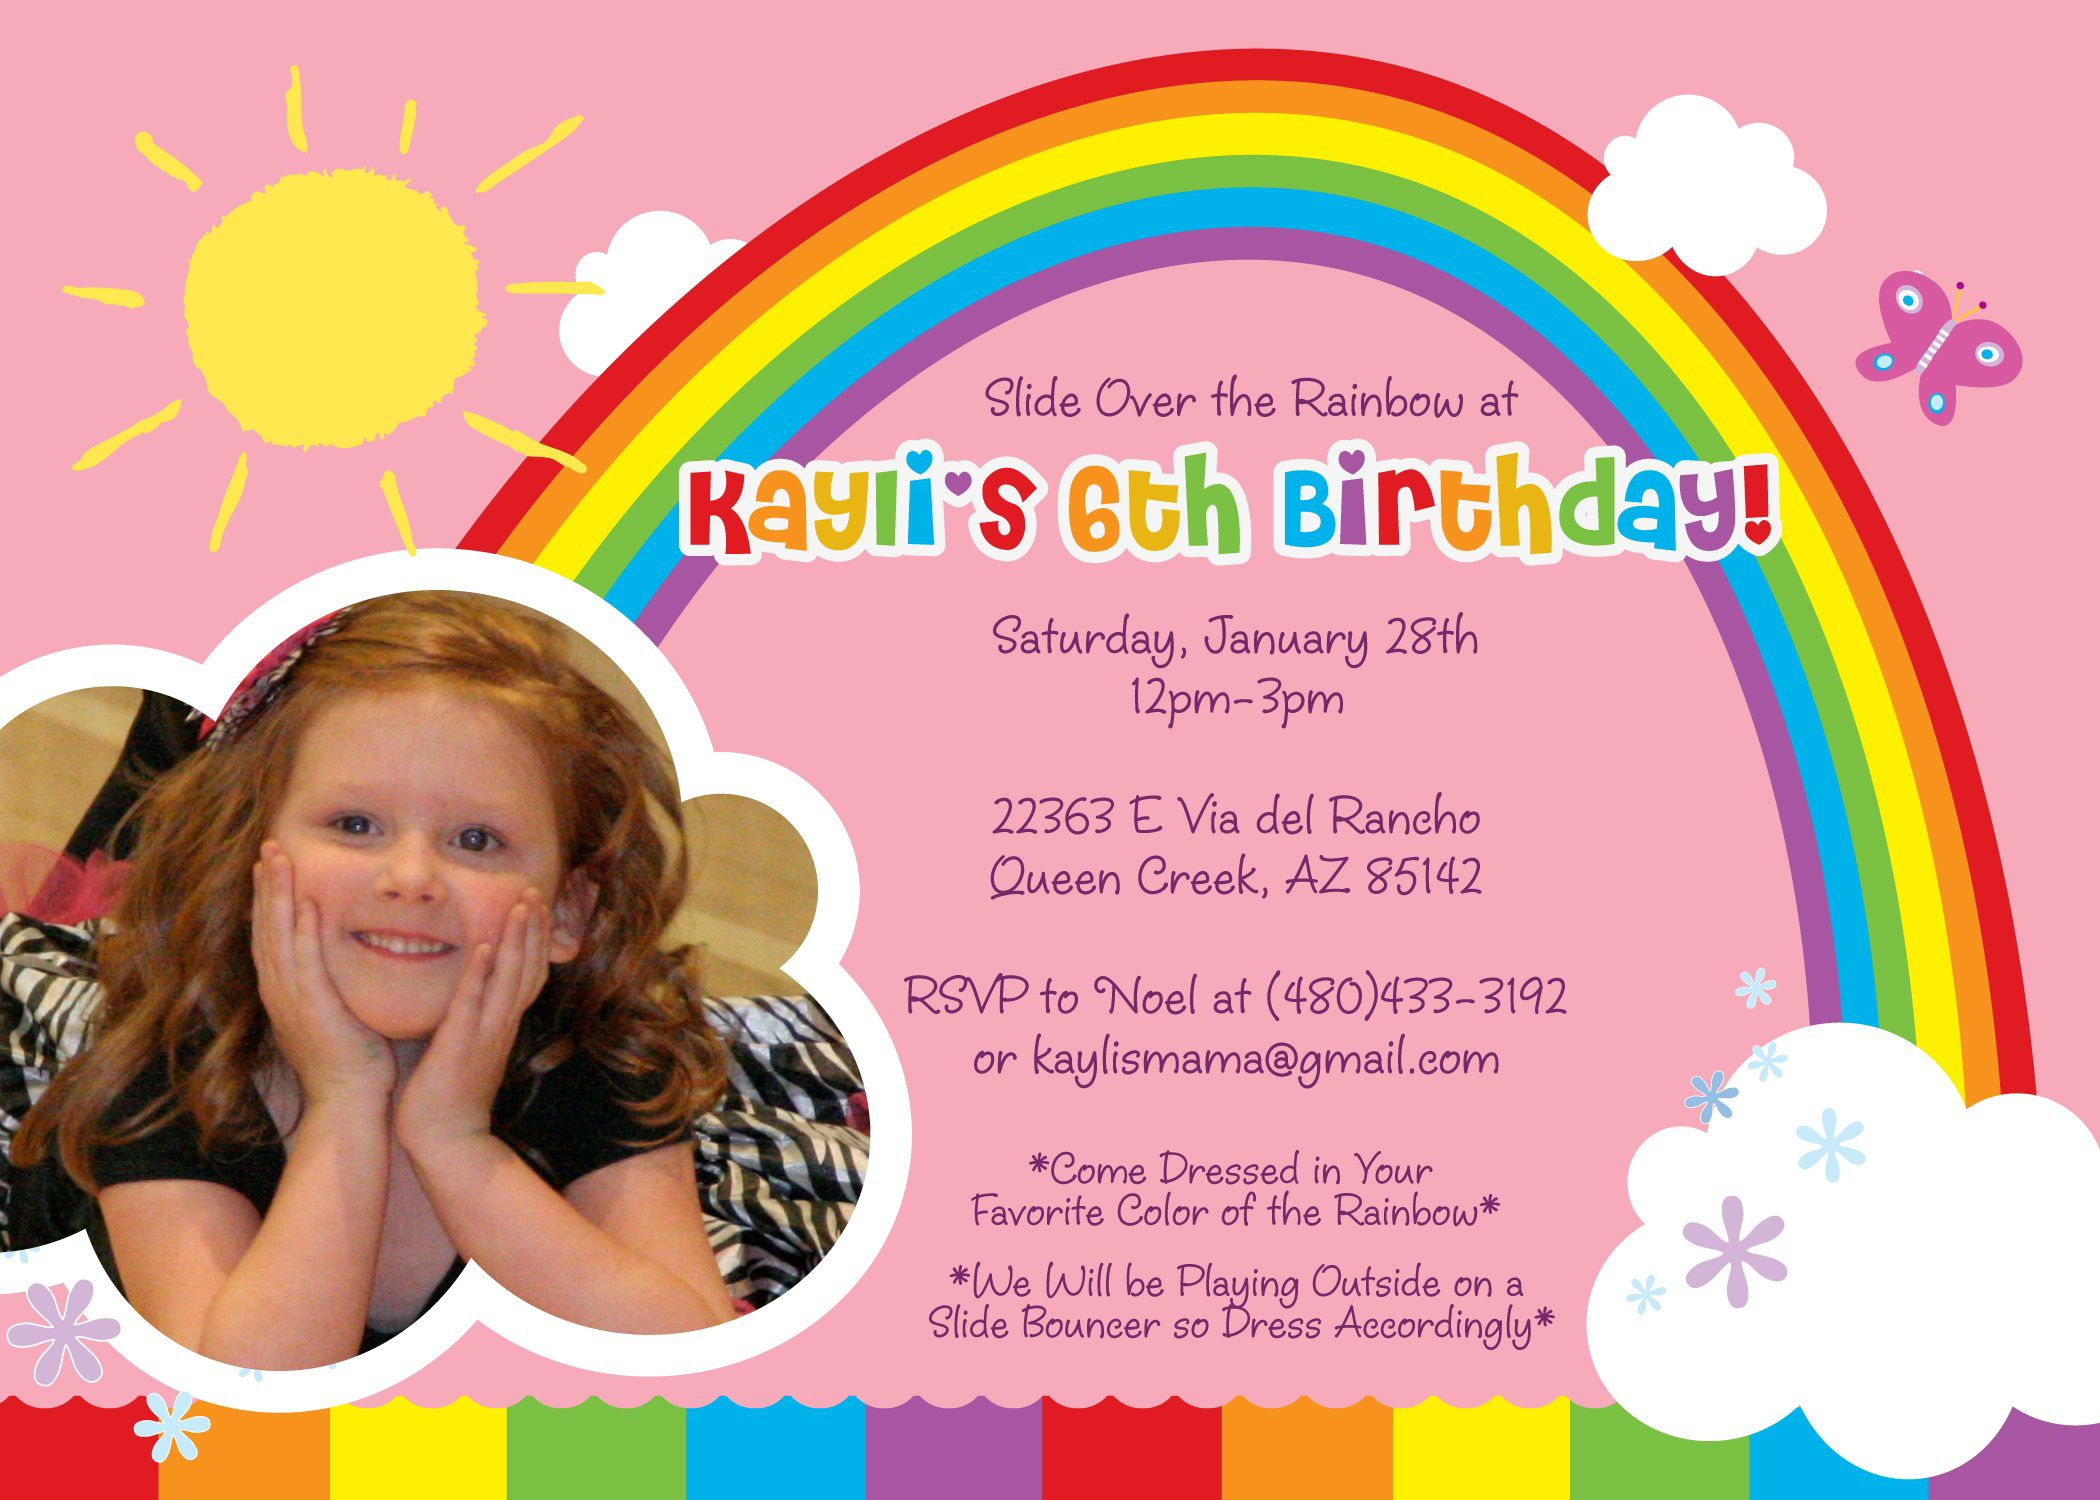 Birthday Party Invitation Template Quotes Invitation Templates - Party invitation template: birthday party invitation template free online